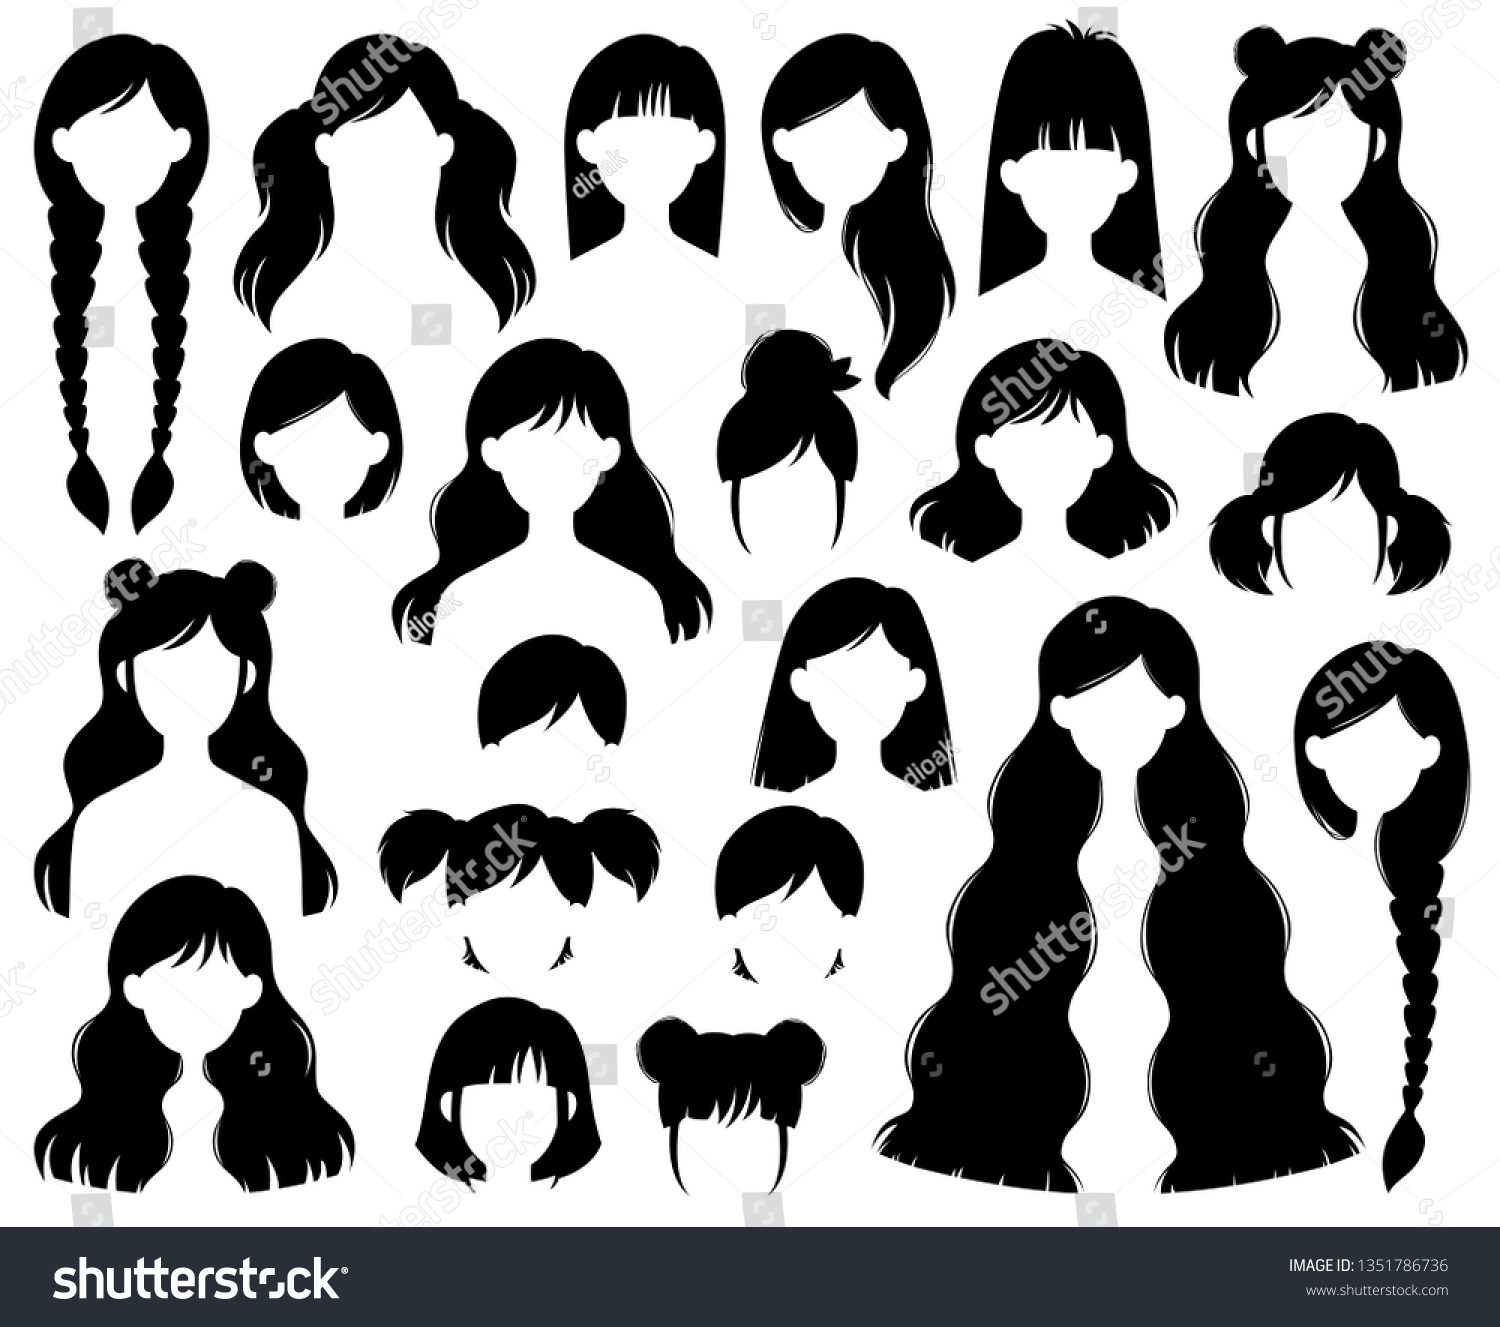 Types Hairstyles Beehive Bob Braided Bun Stock Image   Download Now